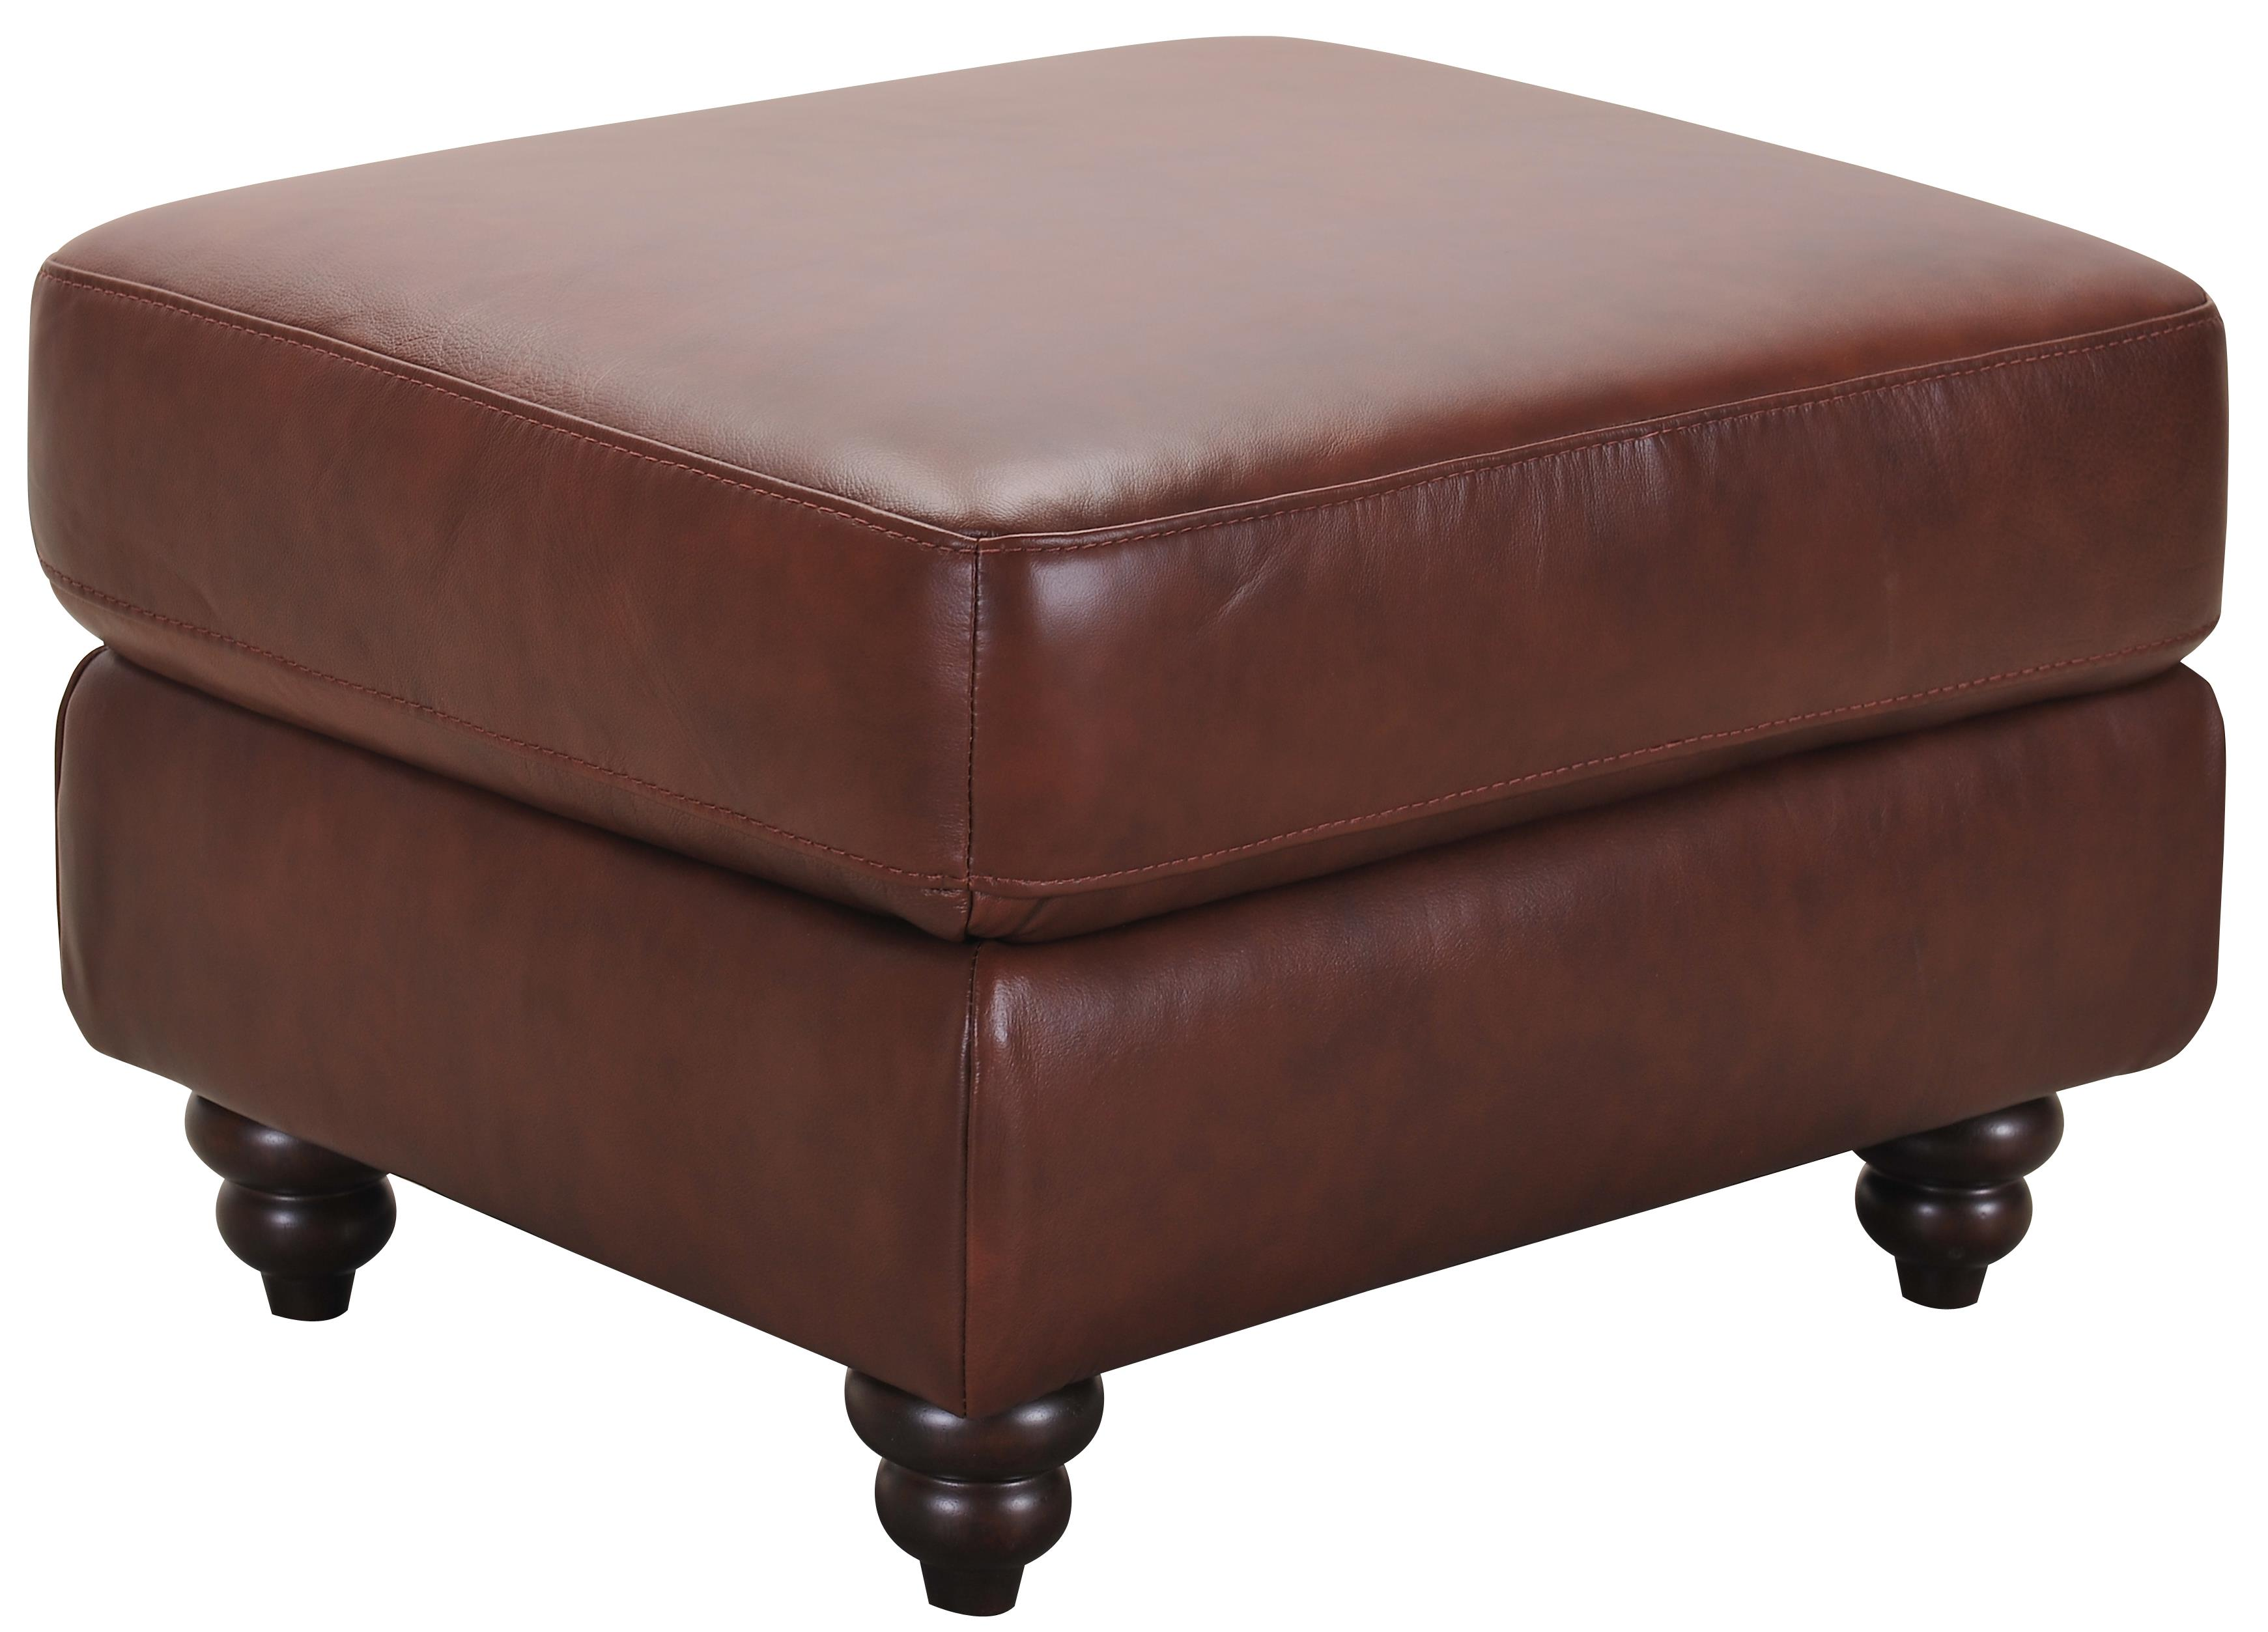 Grady Leather Ottoman  by Violino at Furniture Superstore - Rochester, MN